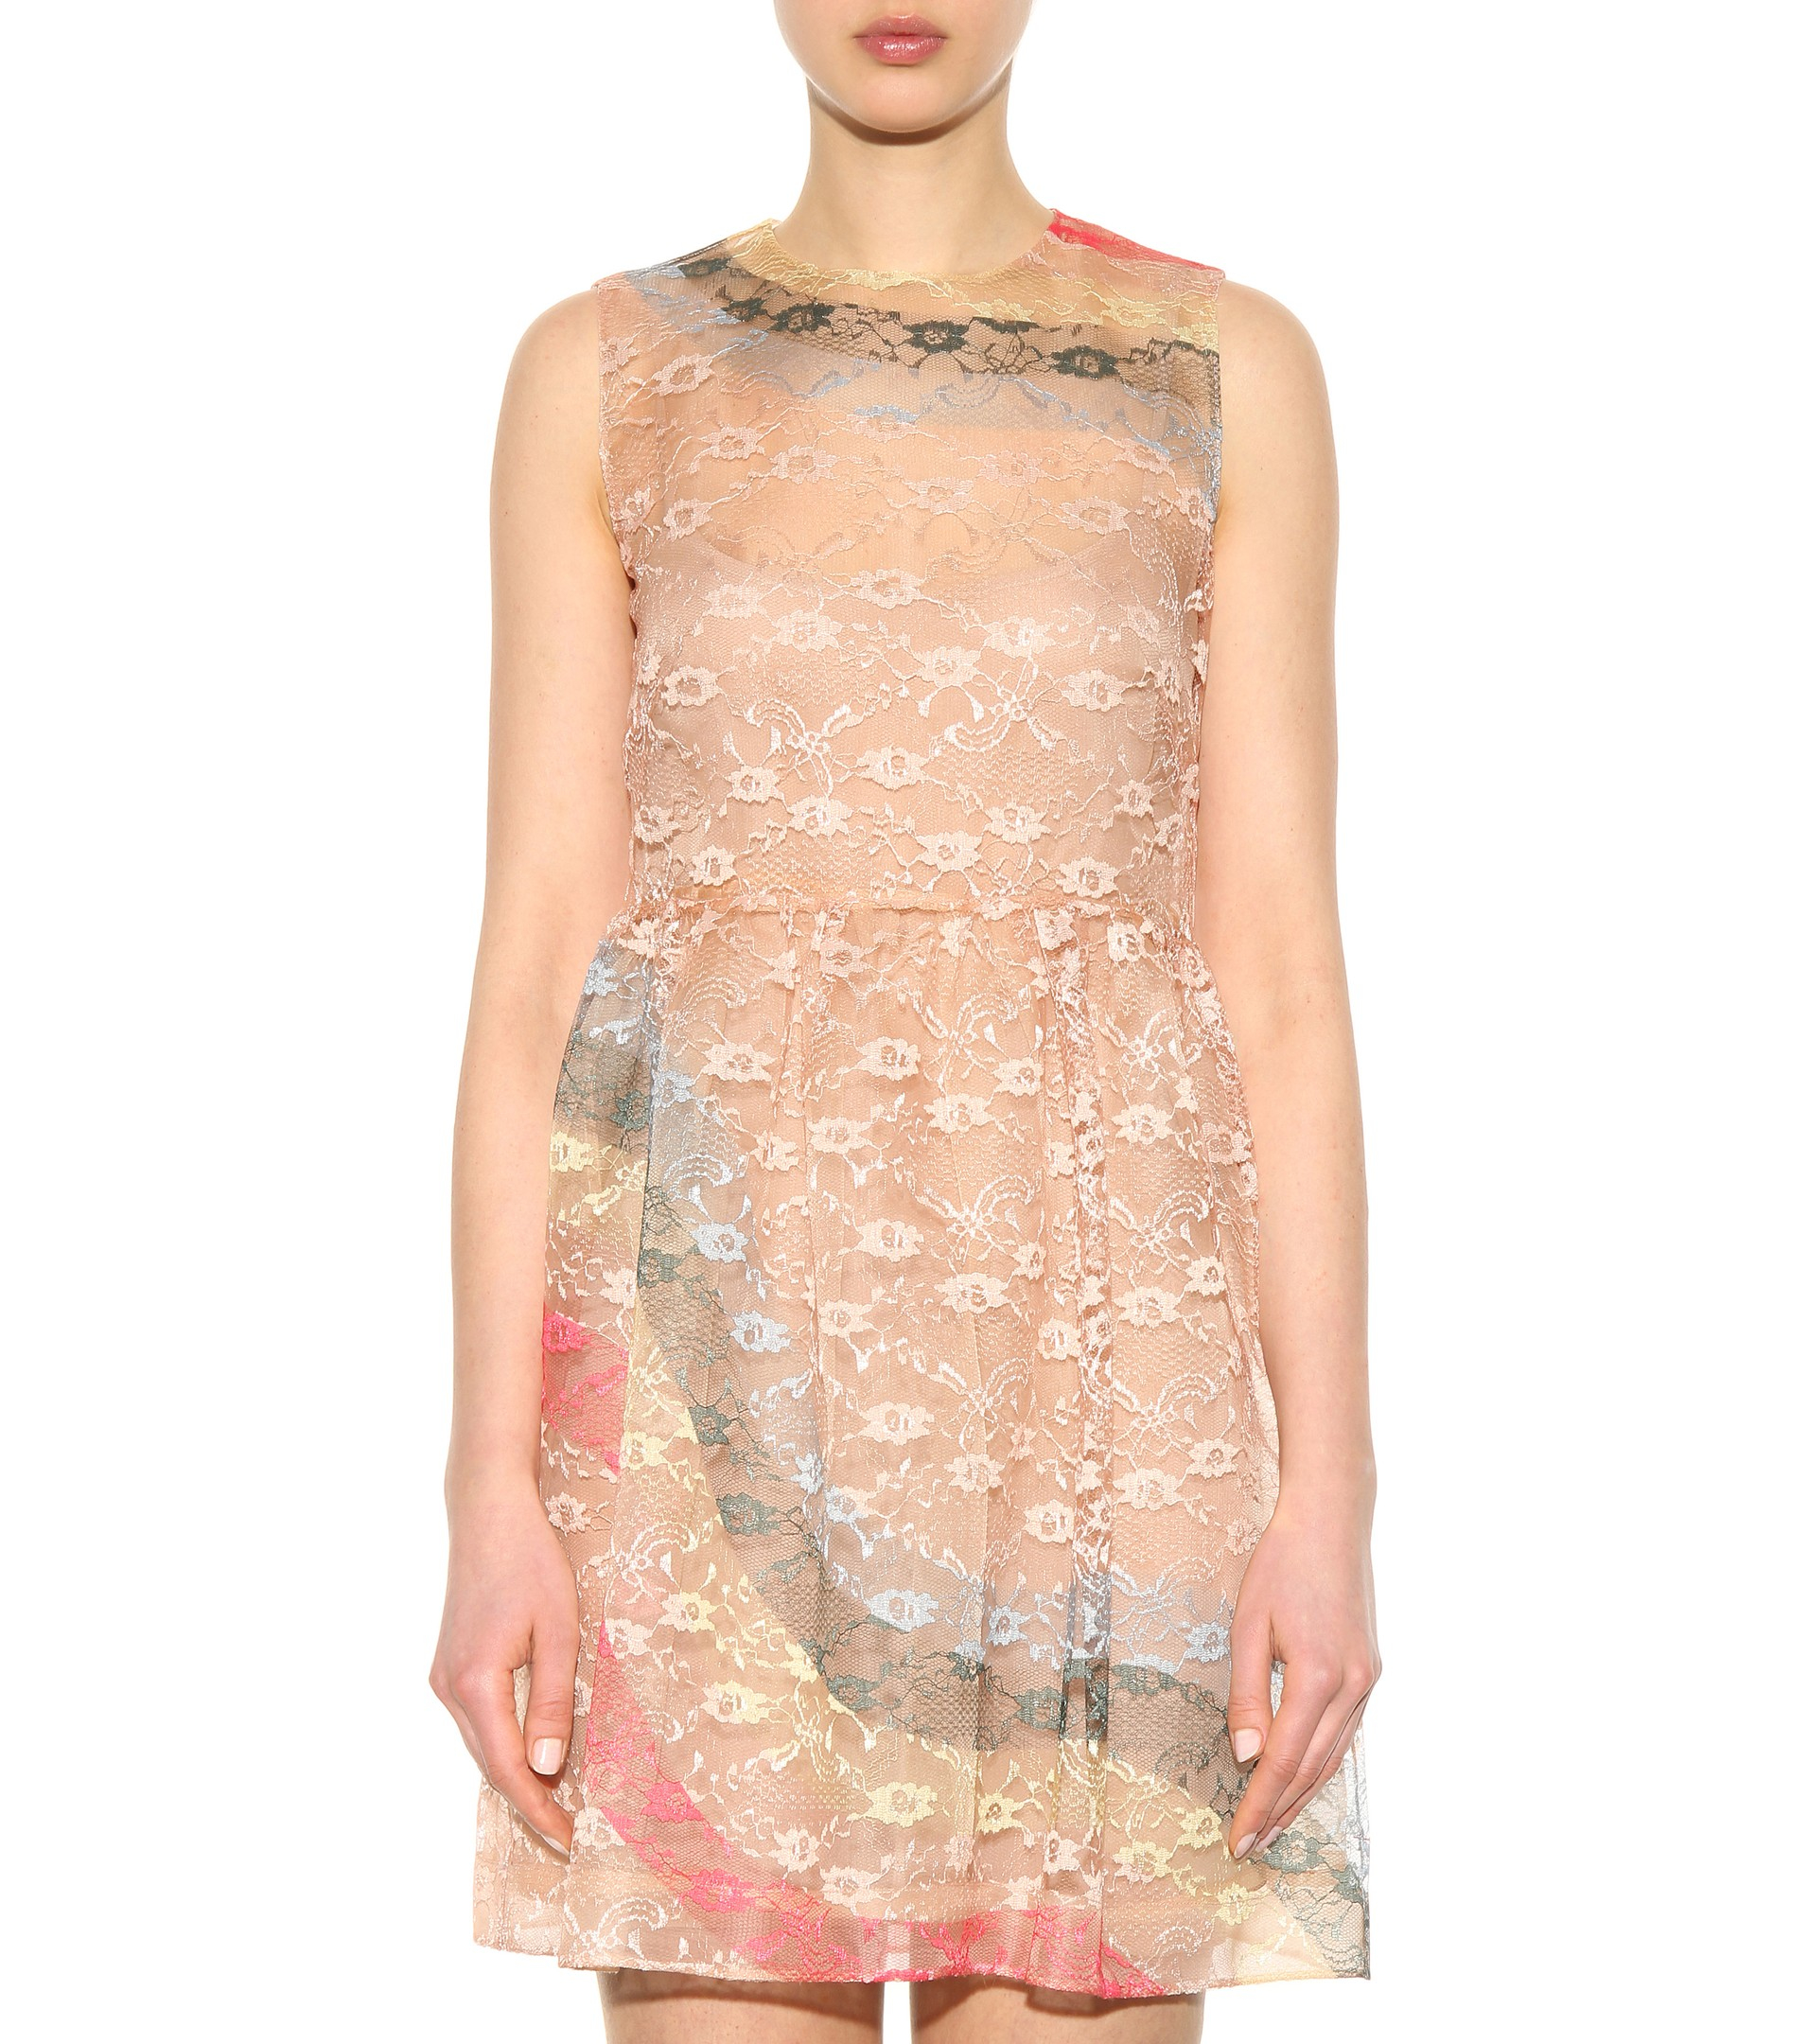 ceb6197a5a7 Red Valentino White Lace Dress